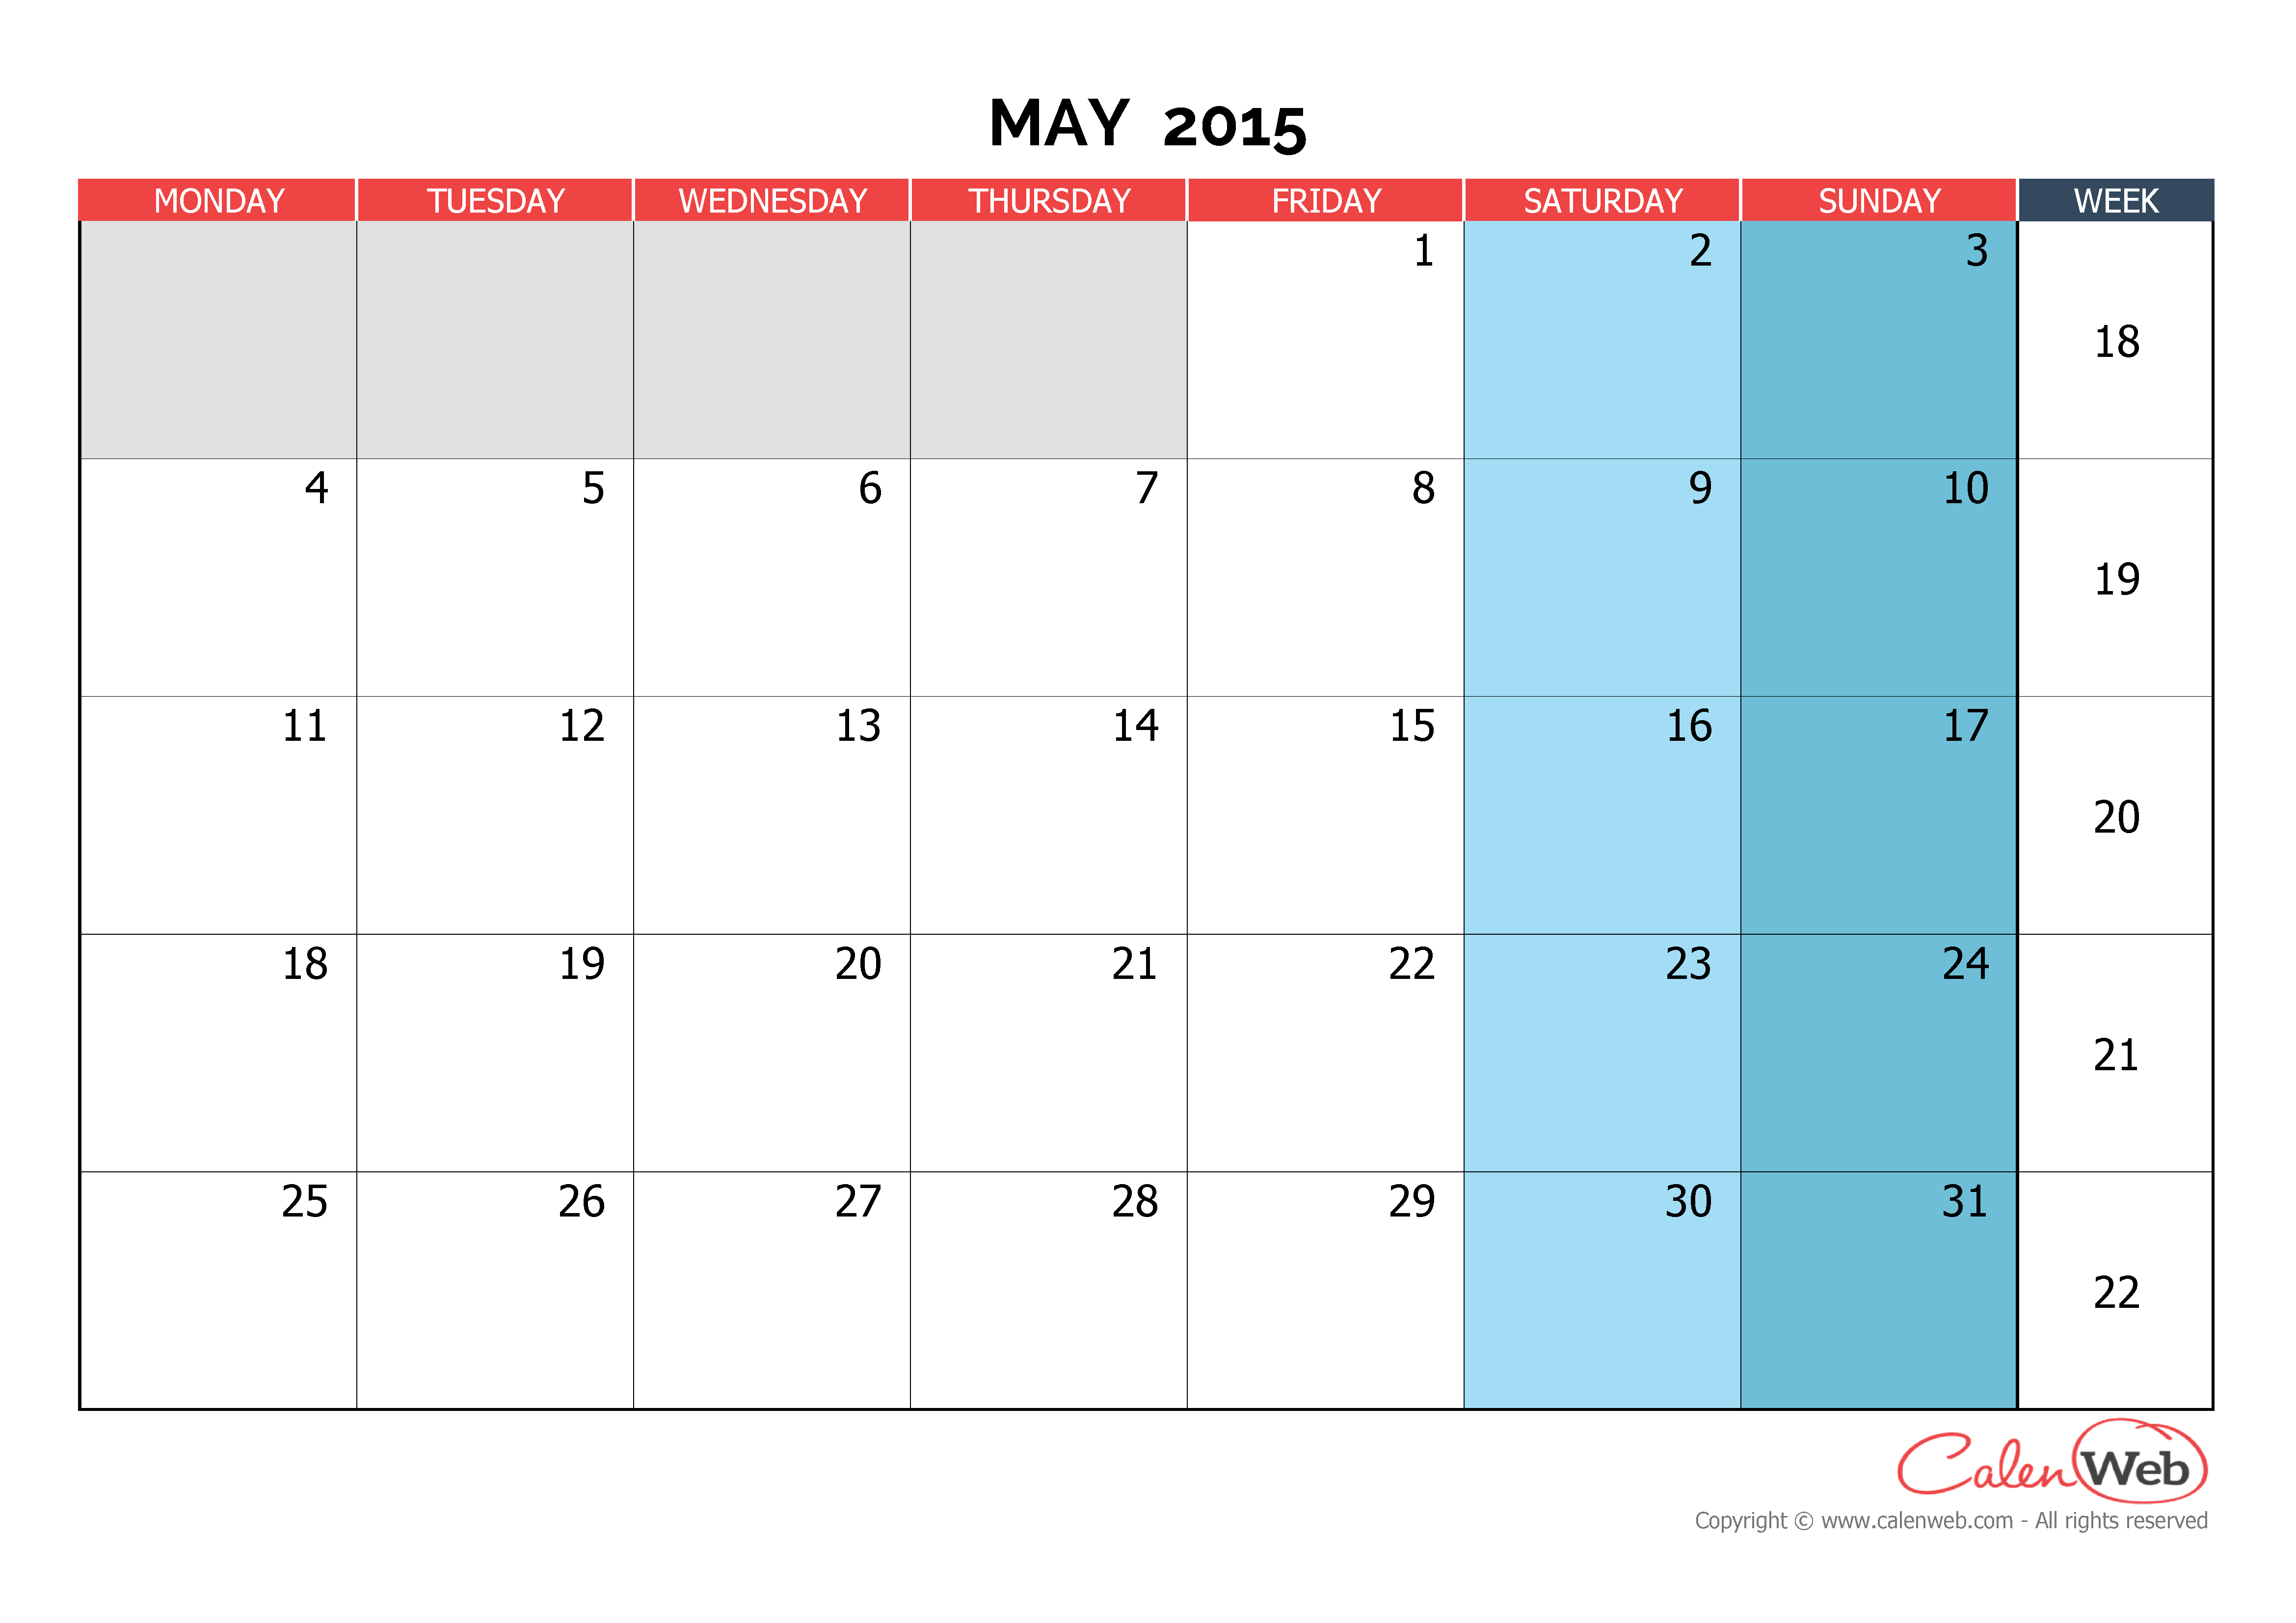 Monthly Calendar - Month Of May 2015 The Week Starts On